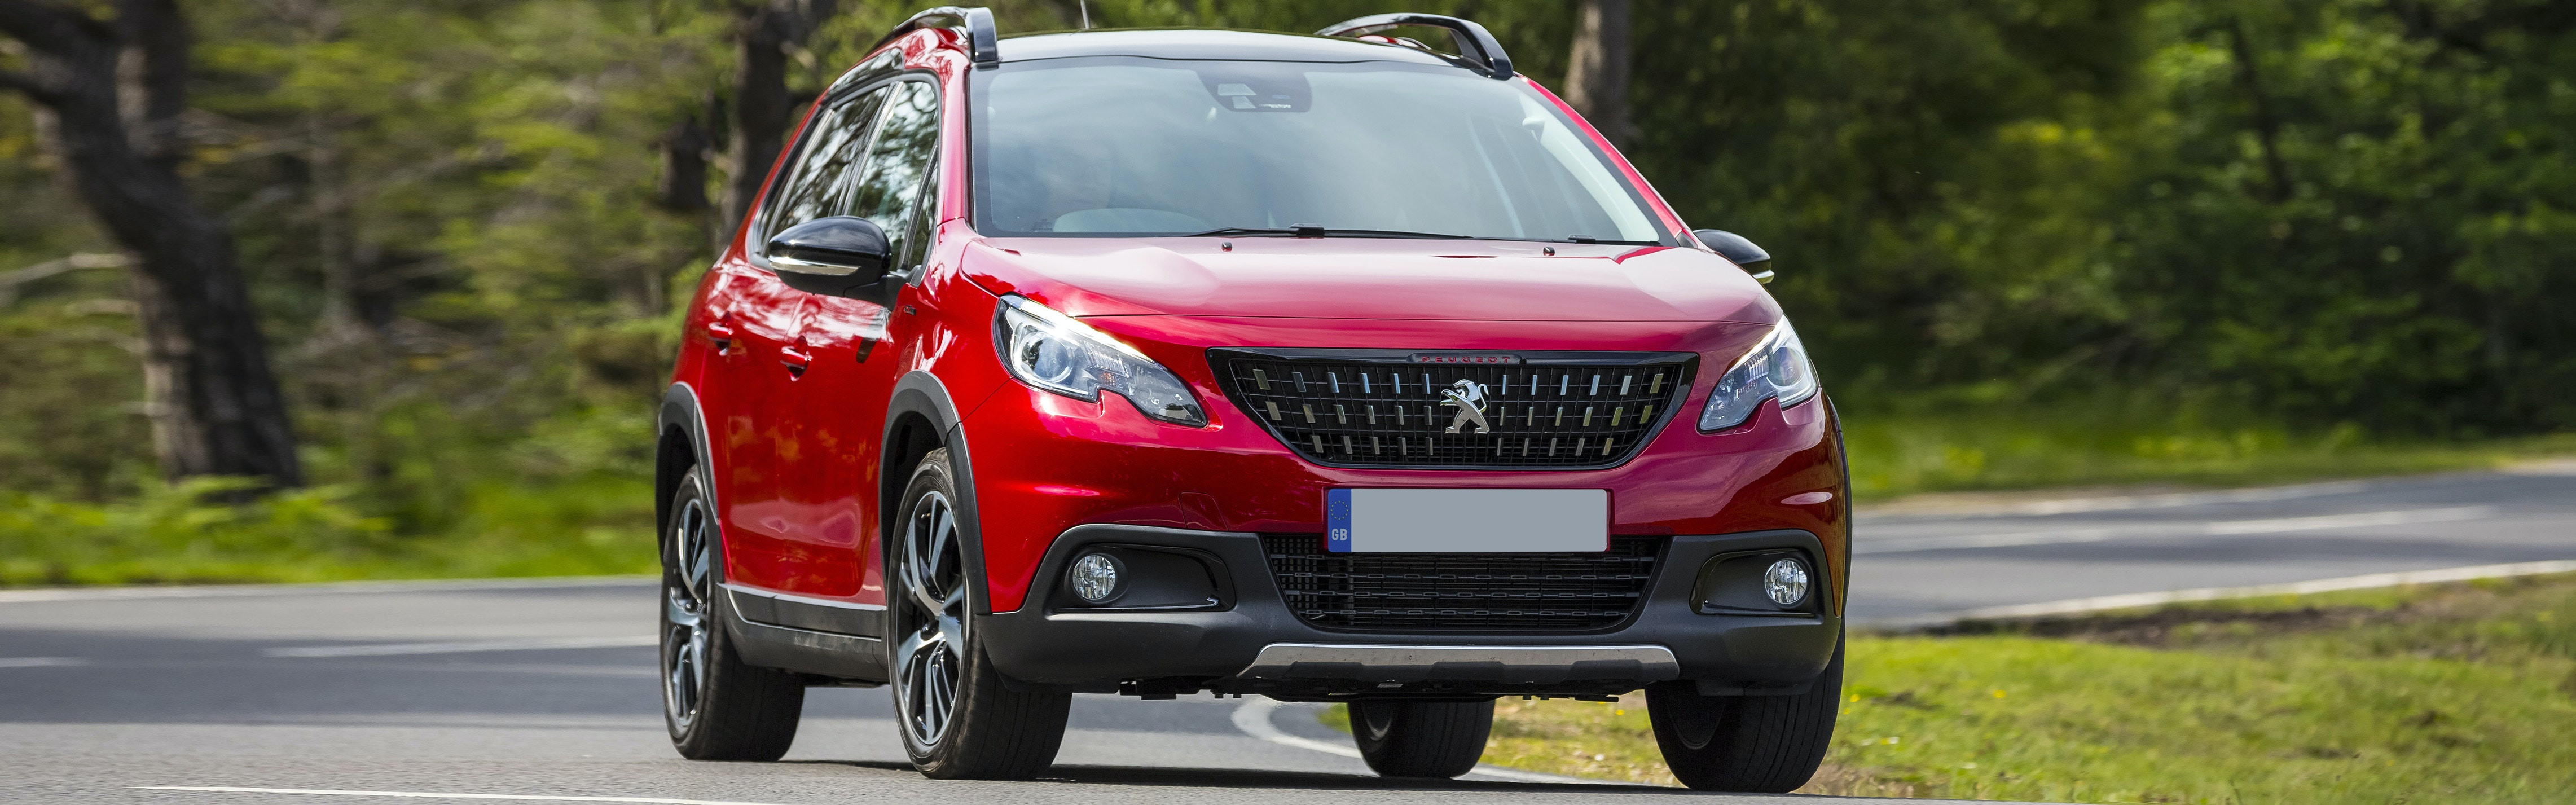 Red Peugeot 2008 driving, viewed from the front